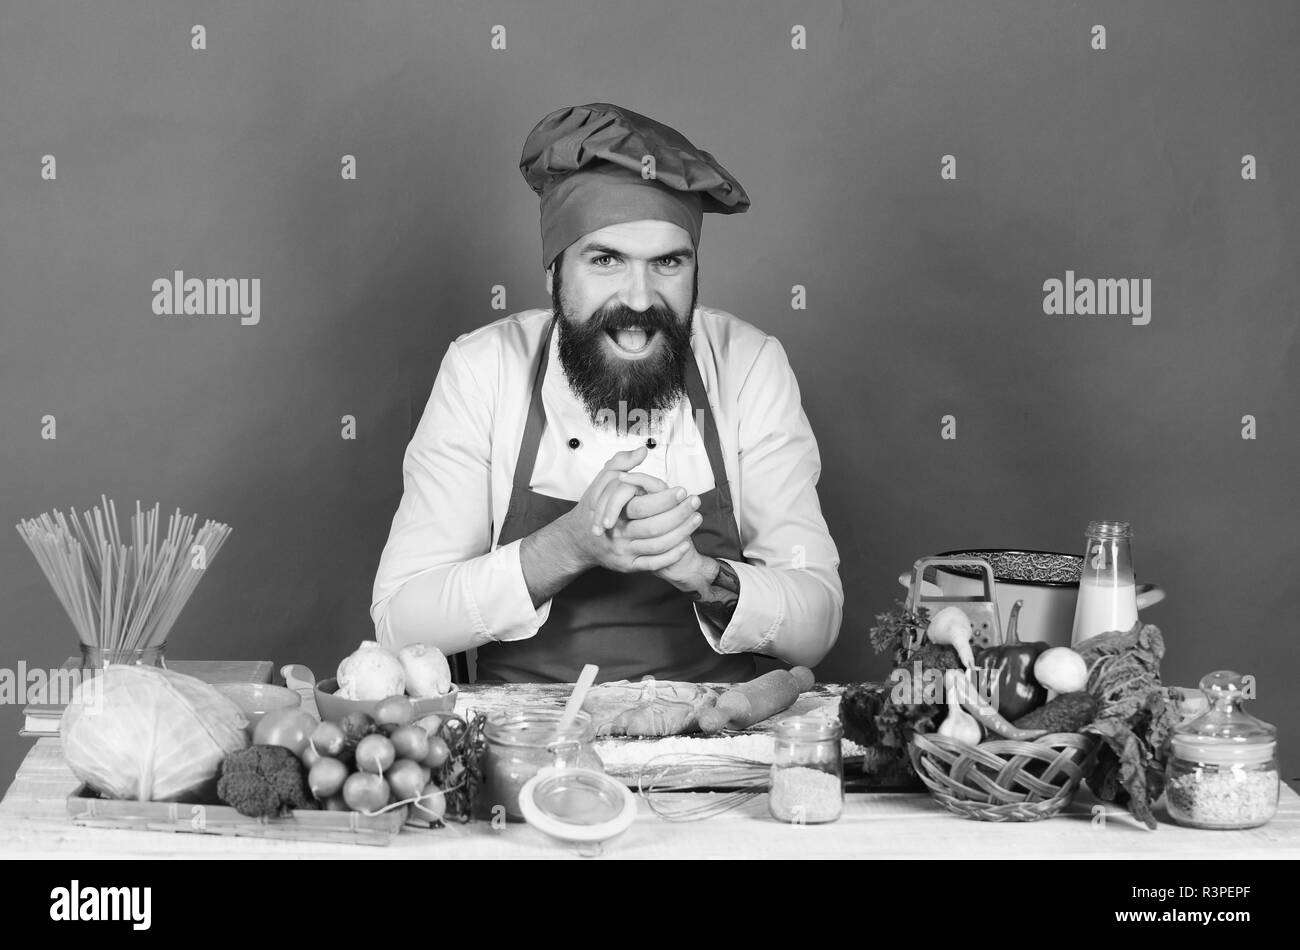 Cooking process concept. Cook with tricky face in burgundy uniform rubs hands near ingredients. Man with beard sits by countertop on green background. - Stock Image